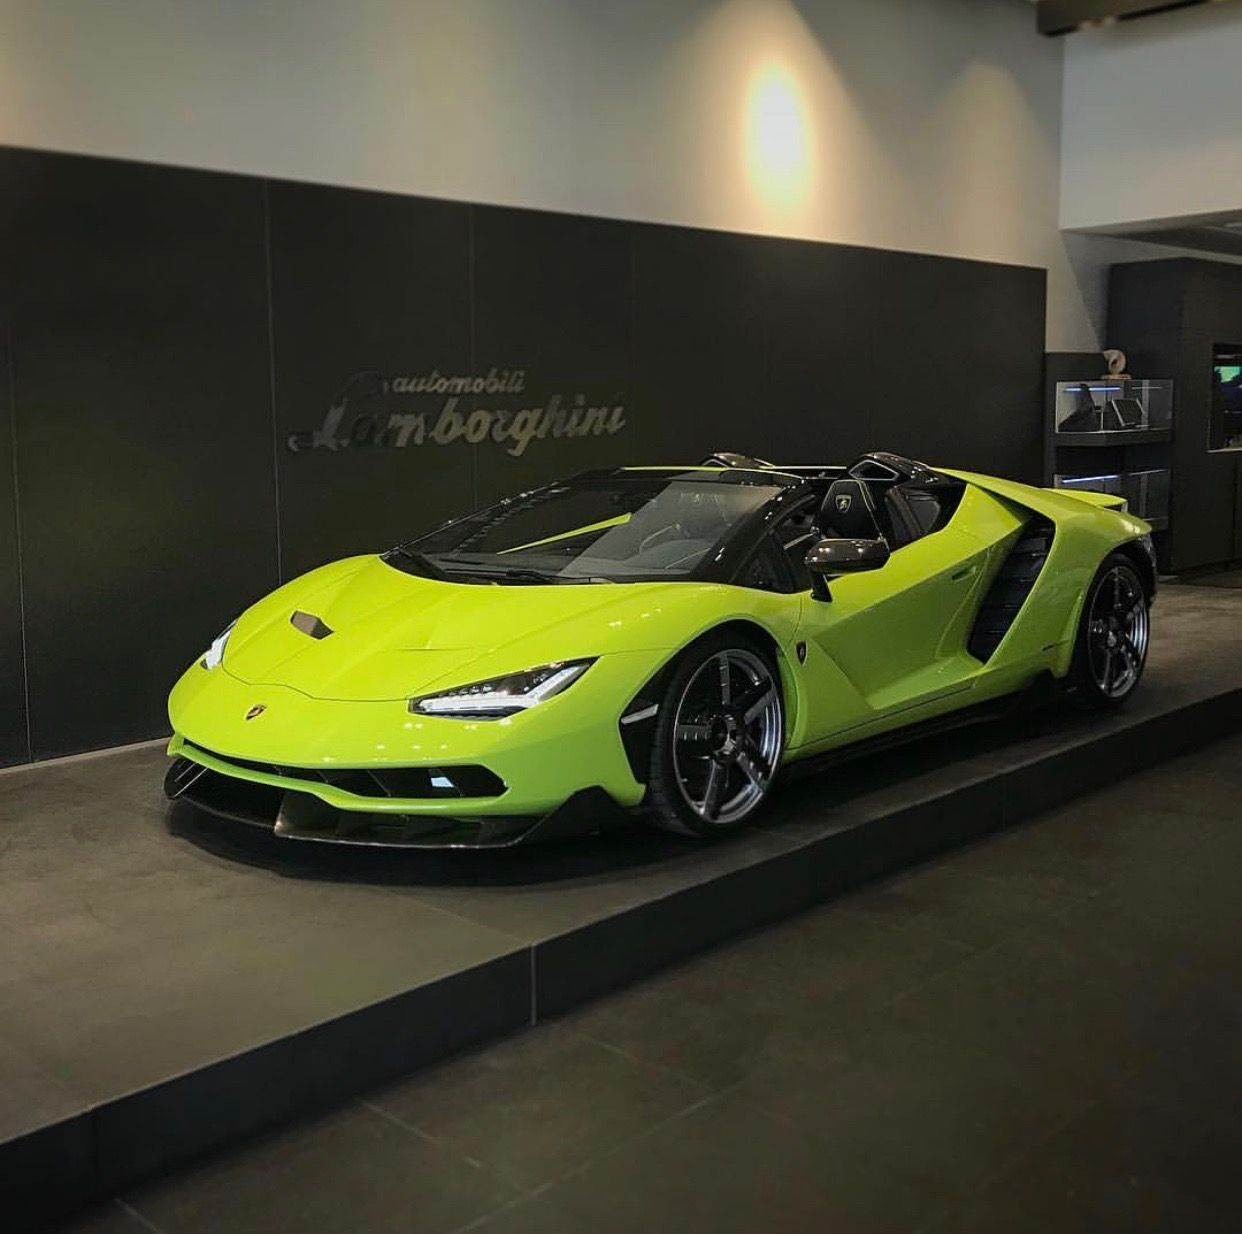 Lamborghini Centenario Roadster Painted In Verde Scandal W Exposed Carbon Fiber Photo Taken By